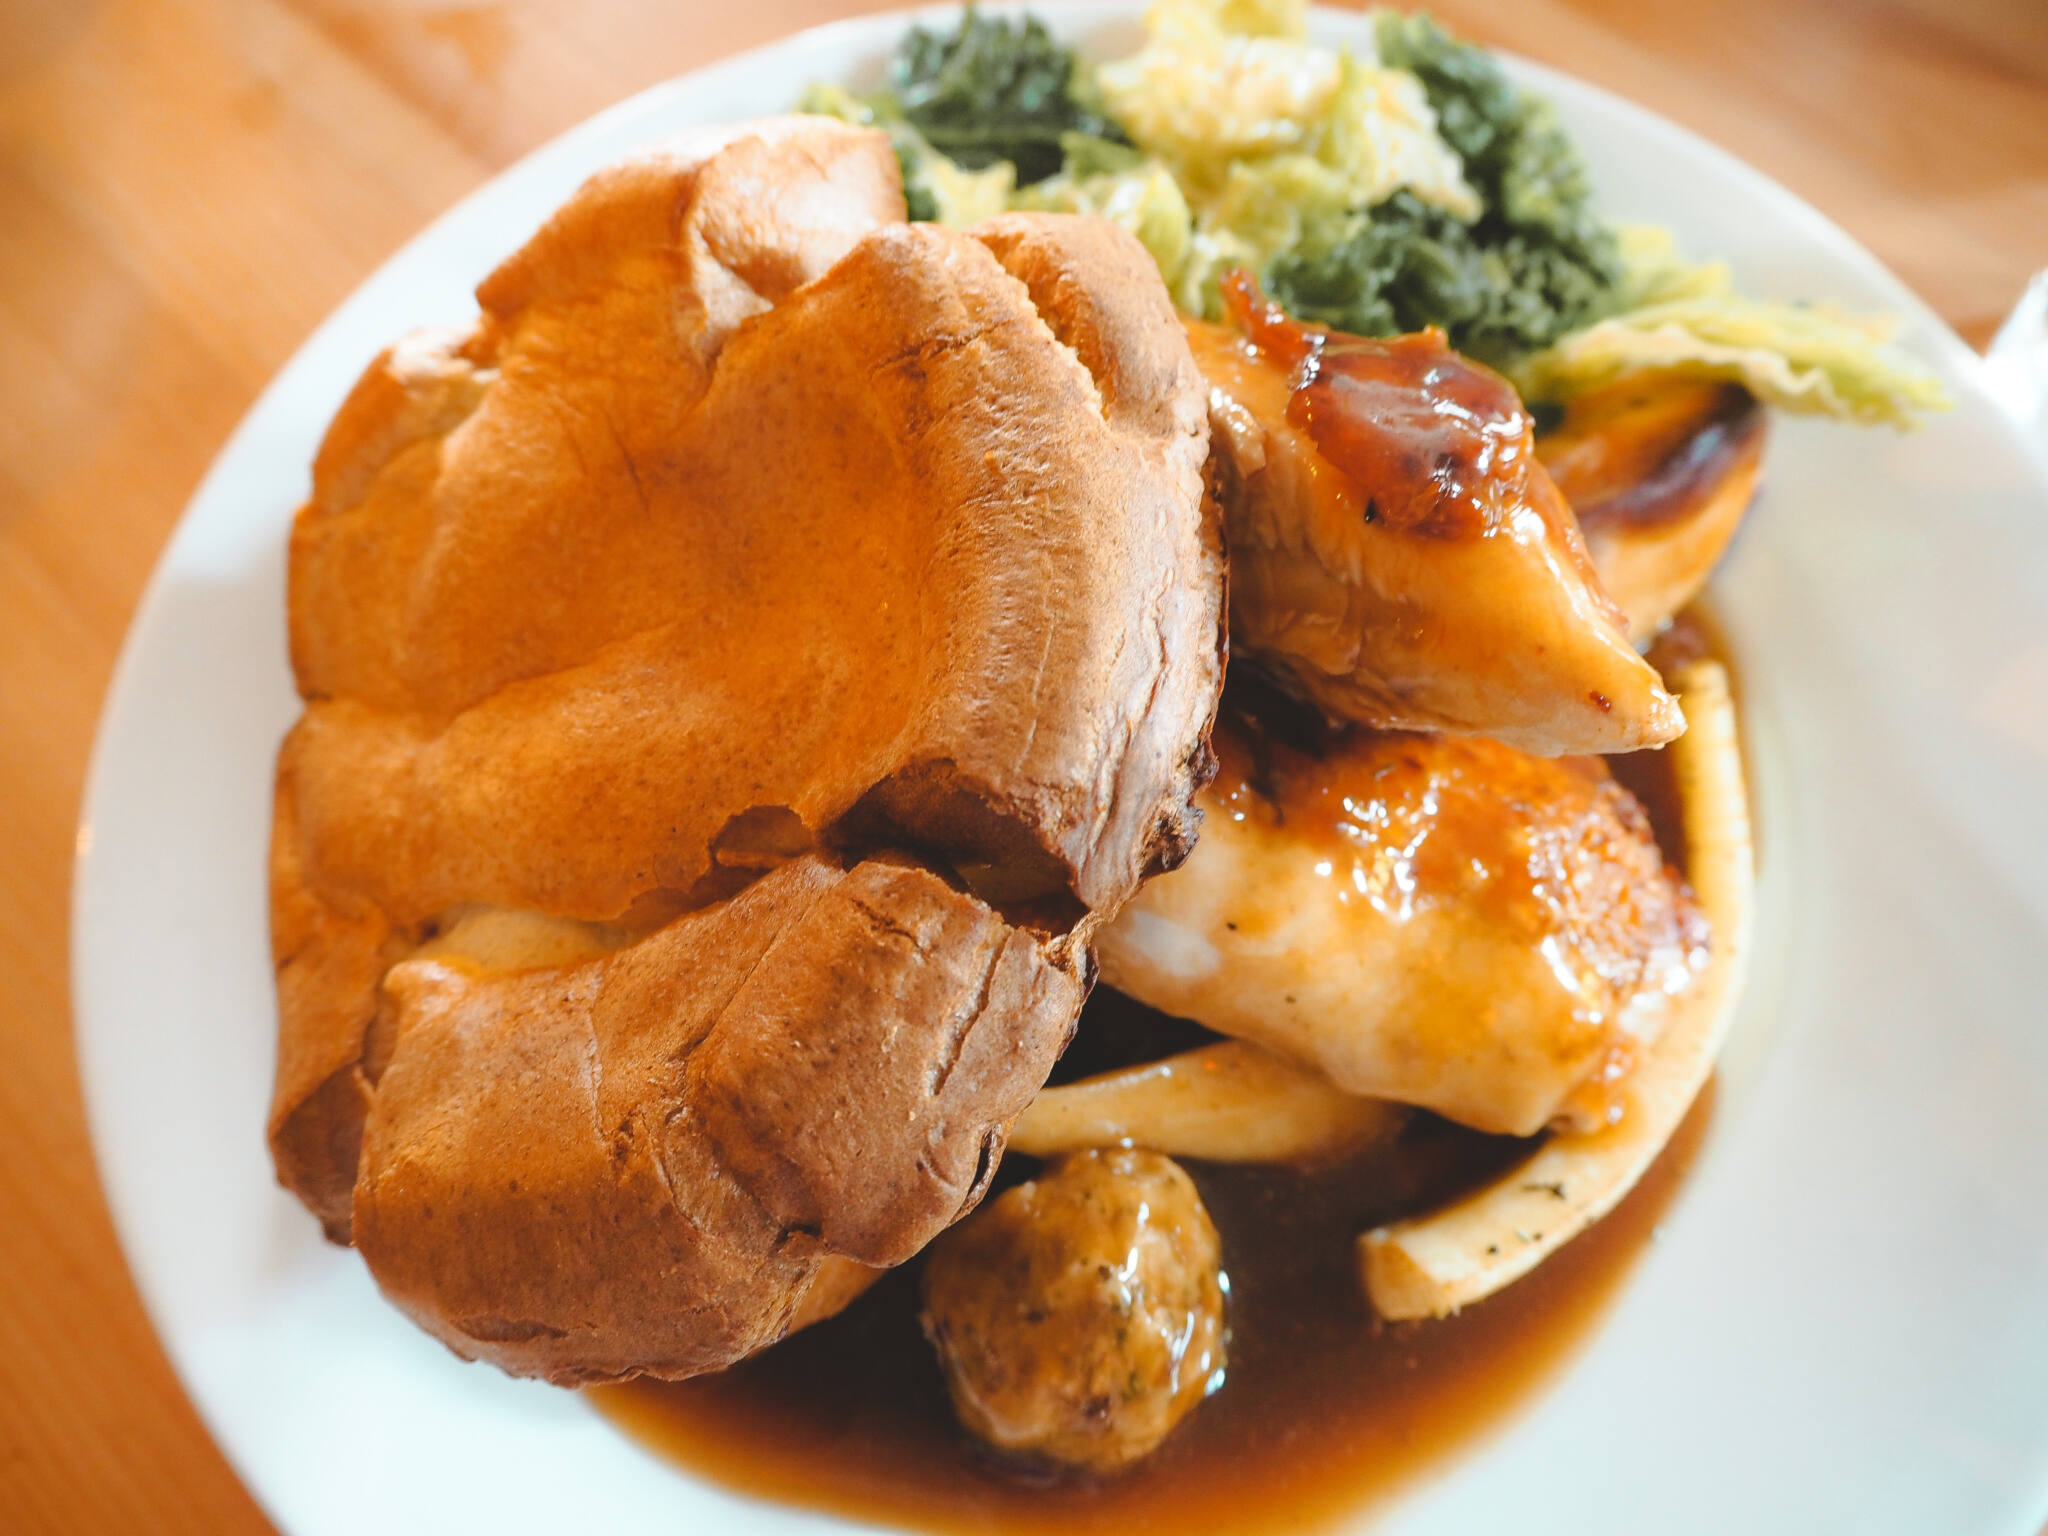 A plate of roast dinner showing yorkshire pudding, chicken, parsnips, stuffing and green vegetables served with lashings of gravy